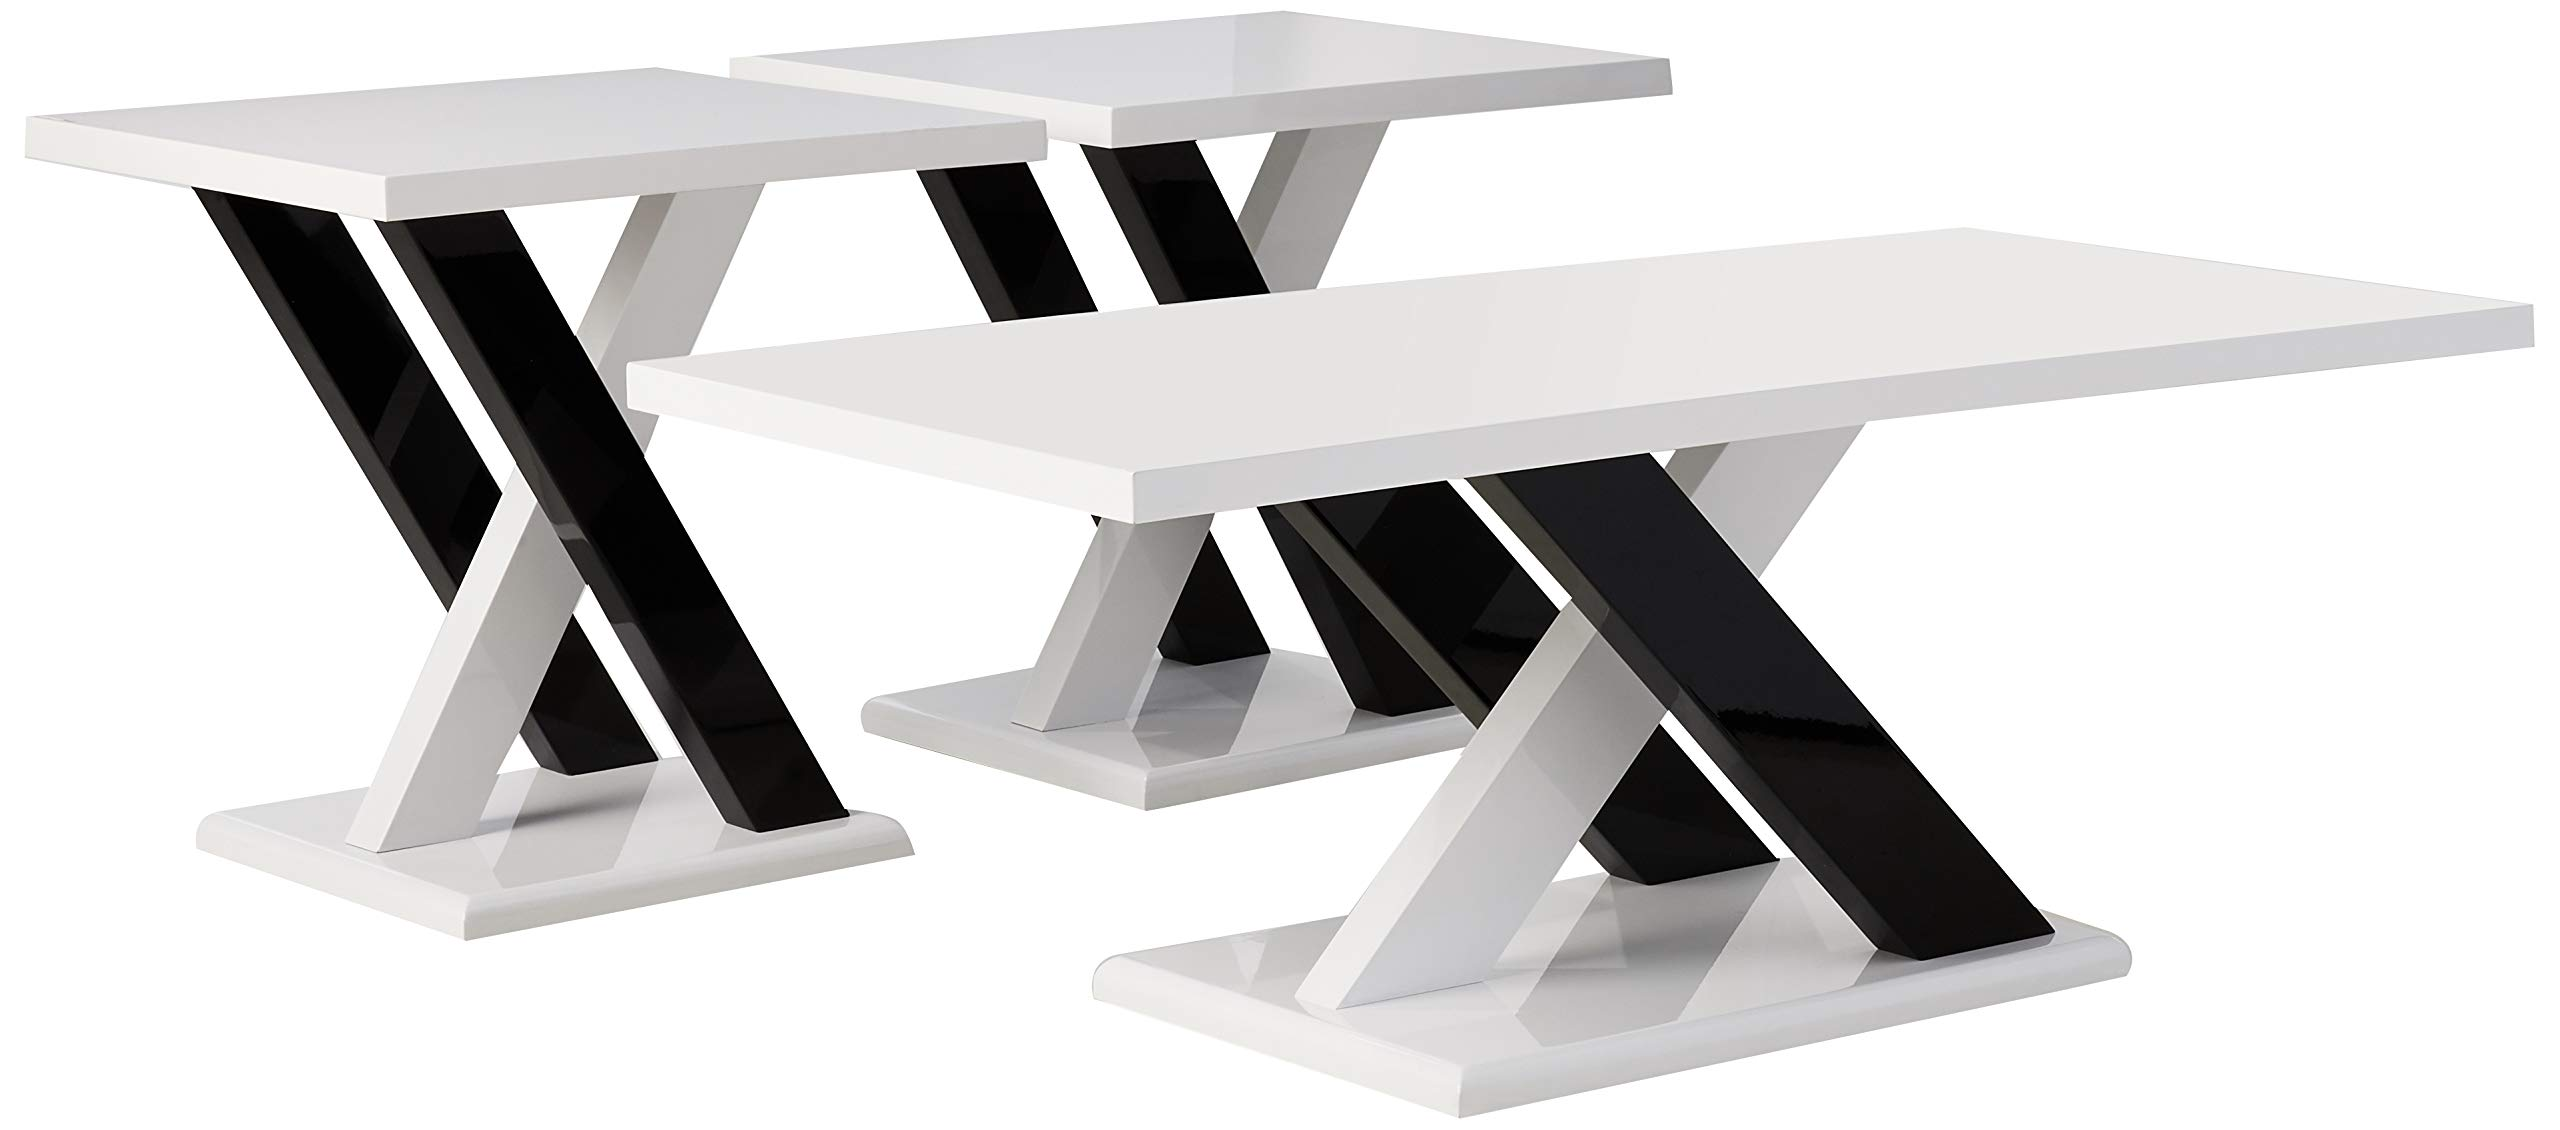 Coaster Home Furnishings 3-piece Occasional Table Set with Cross Supports White and Black by Coaster Home Furnishings